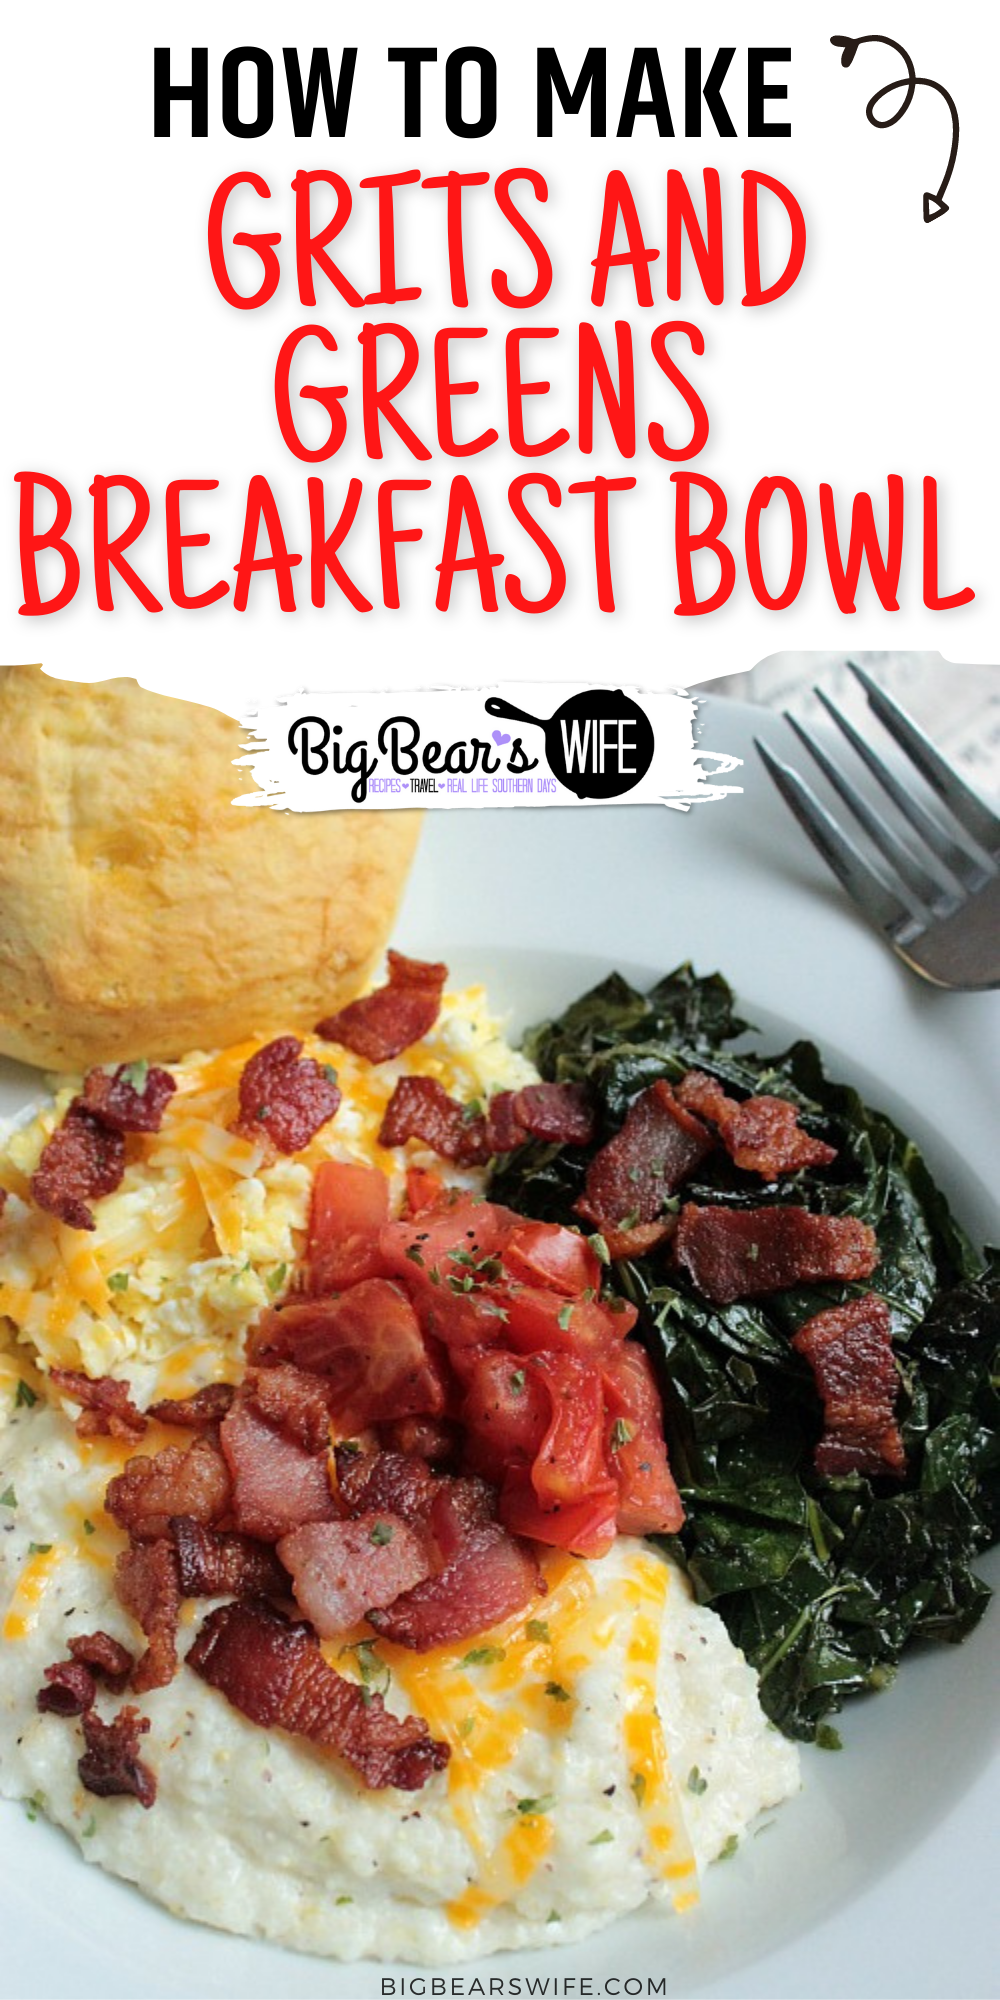 This Perfect Grits and Greens Breakfast Bowl is inspired by a brunch I had at The Corner Kitchen in Ashville, NC years ago! Eggs, Grits, collard greens topped with bacon bits and tomatoes are served with a biscuit for the perfect southern breakfast! via @bigbearswife